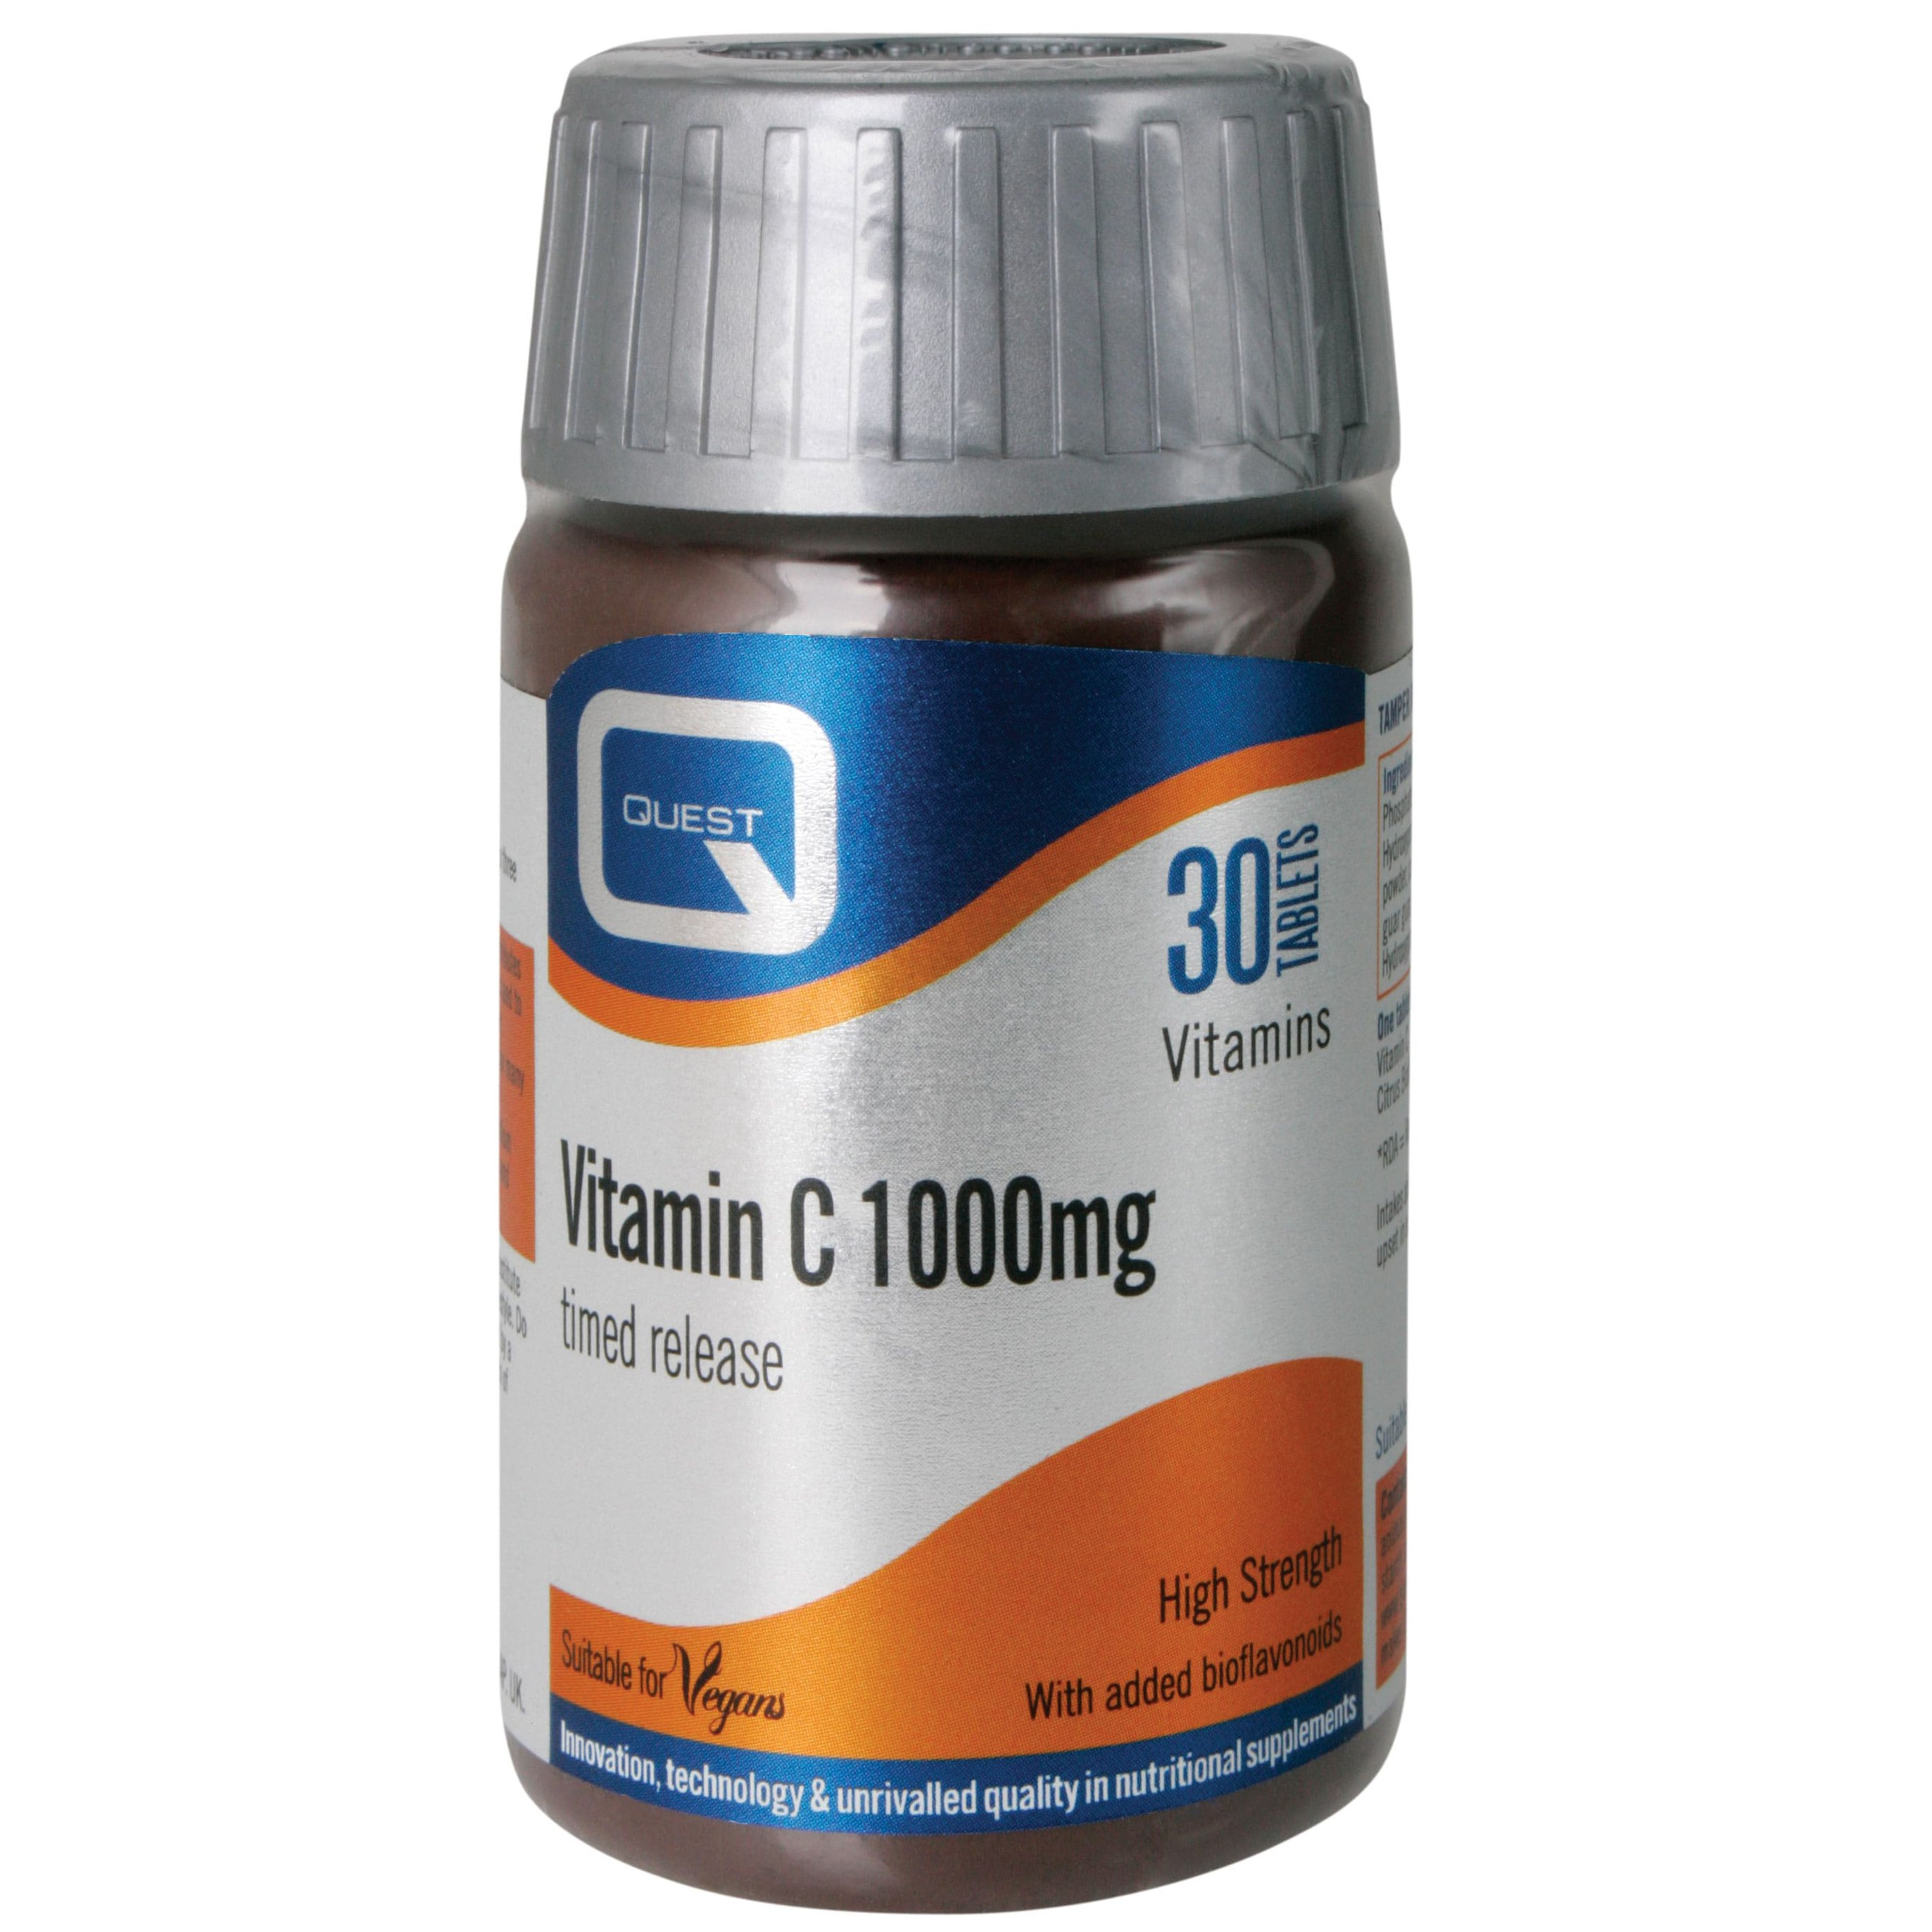 Quest Vitamin C 1000mg – Timed Released, 30 tabs